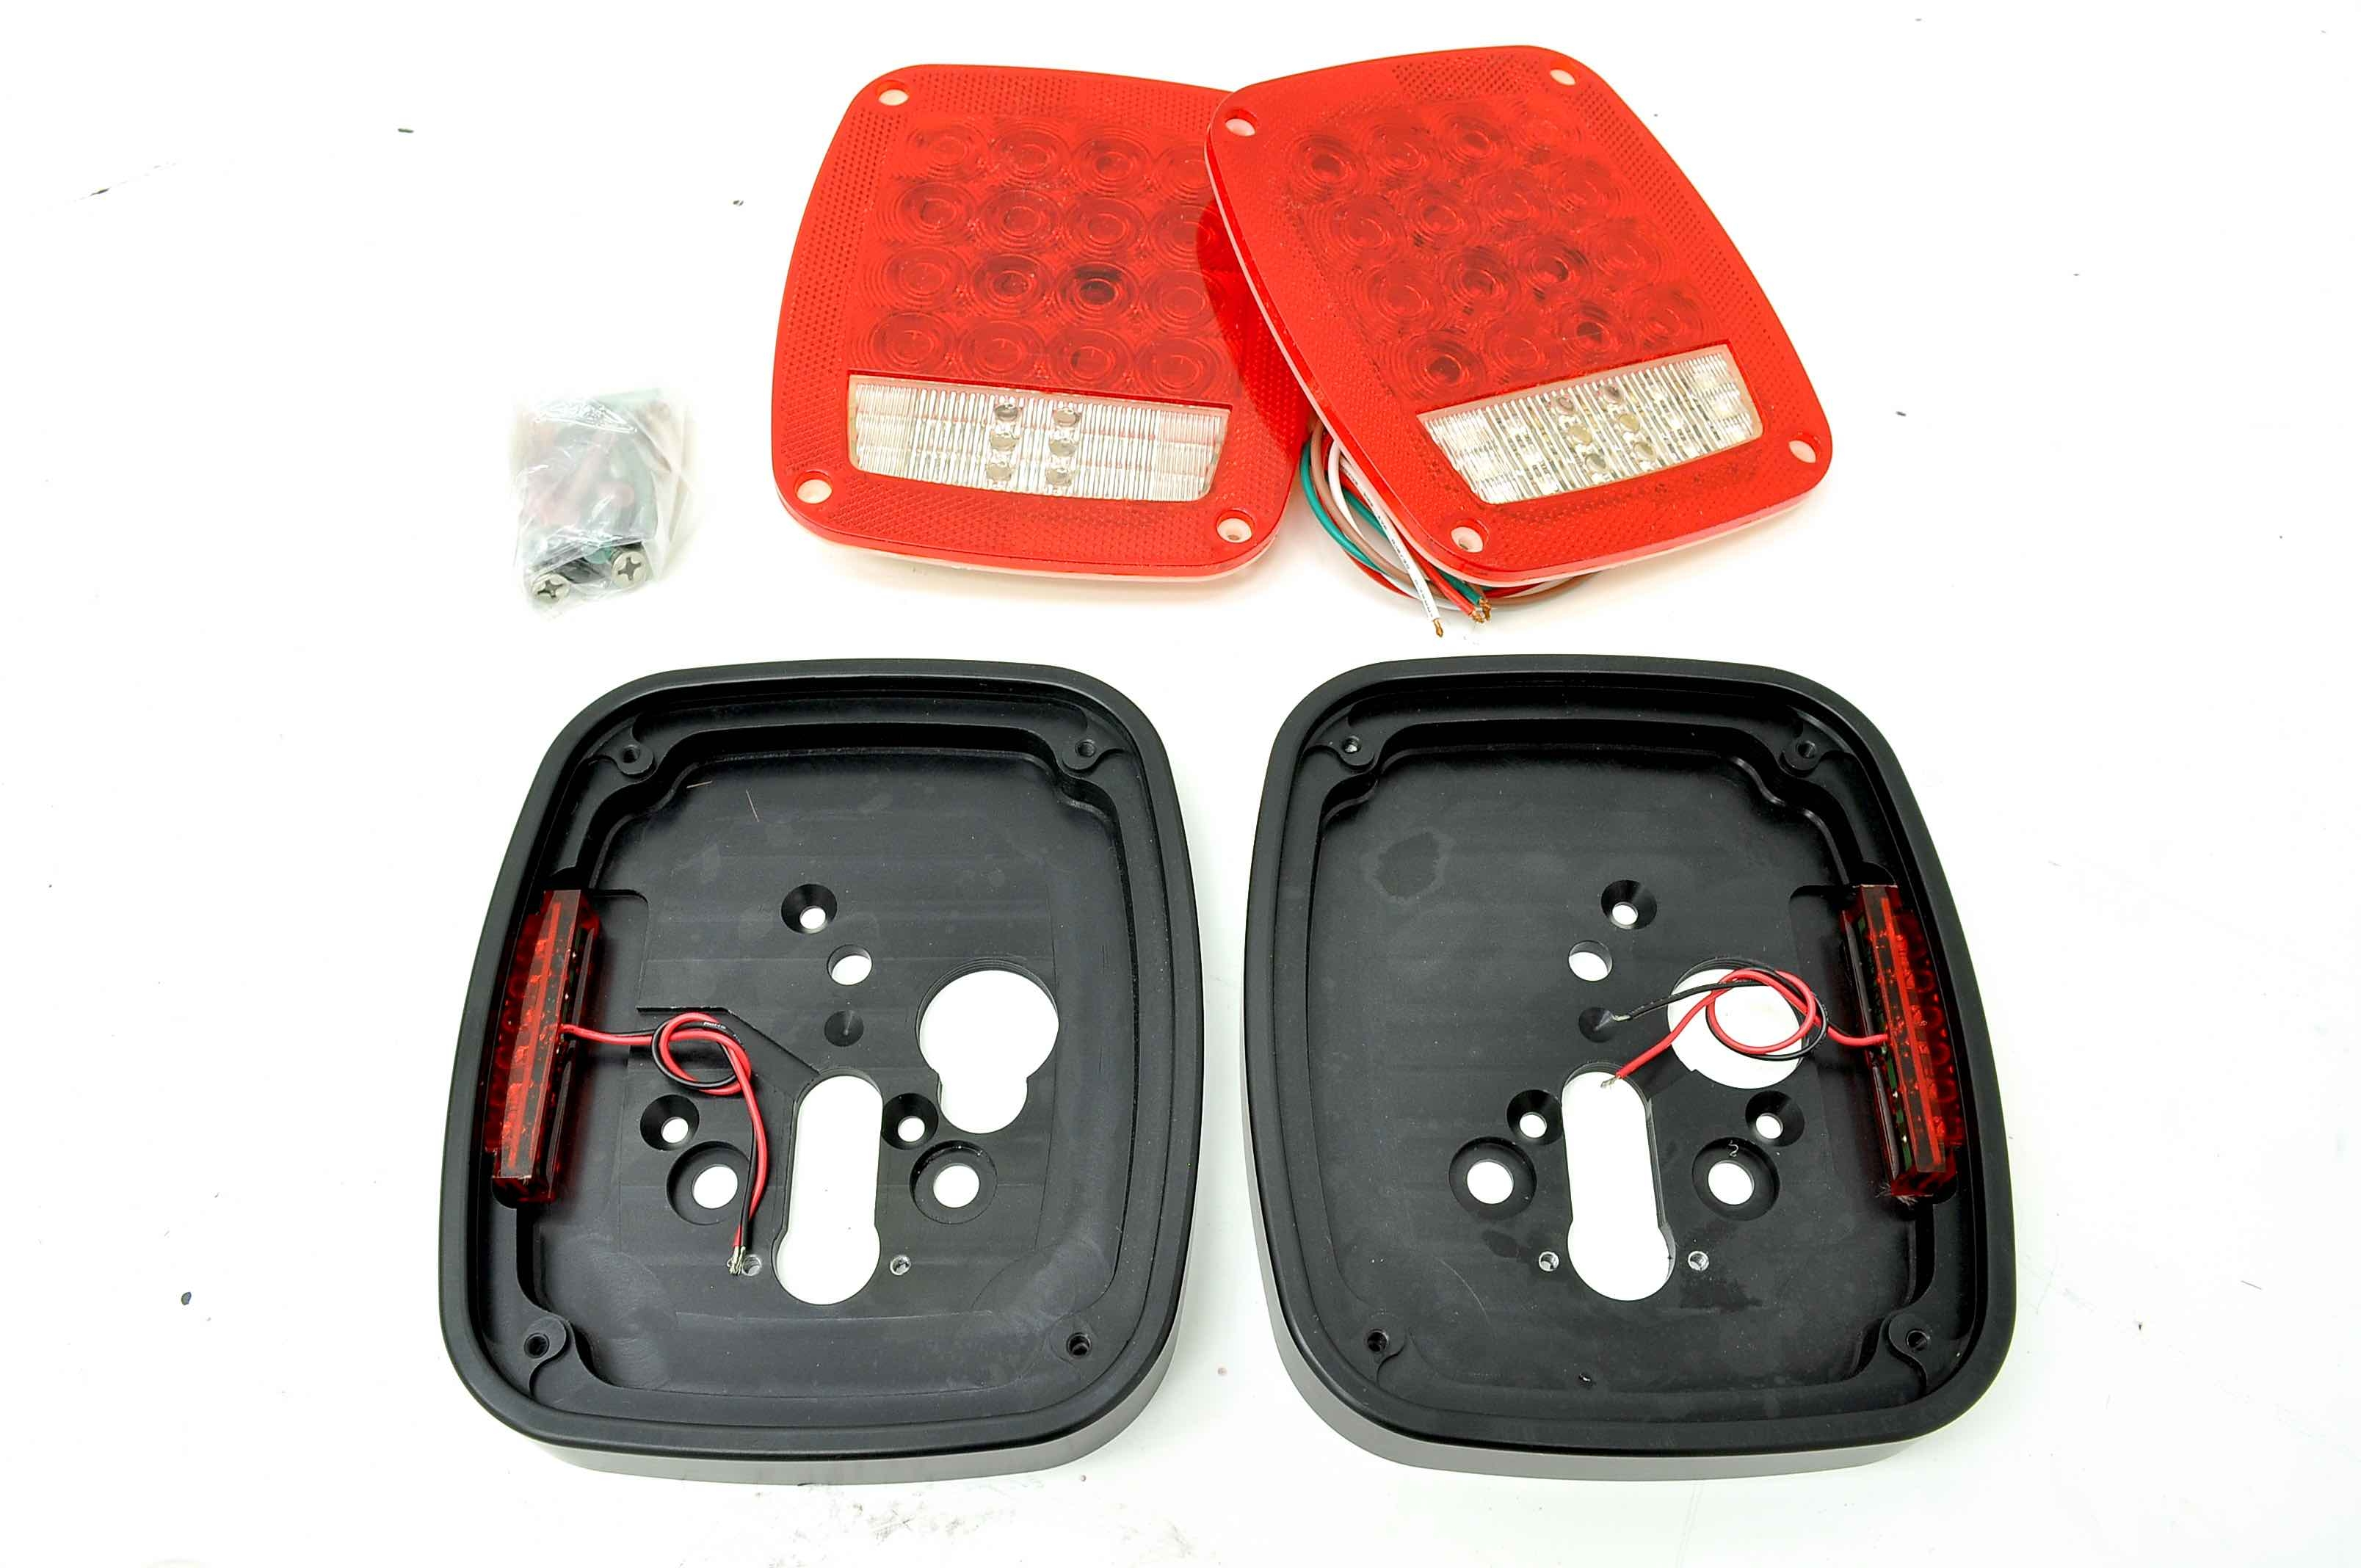 Jeep Wrangler Led Tail Lights >> Sav Tl Savvy Billet Aluminum Led Tail Lights Jeep Wrangler Cj Yj